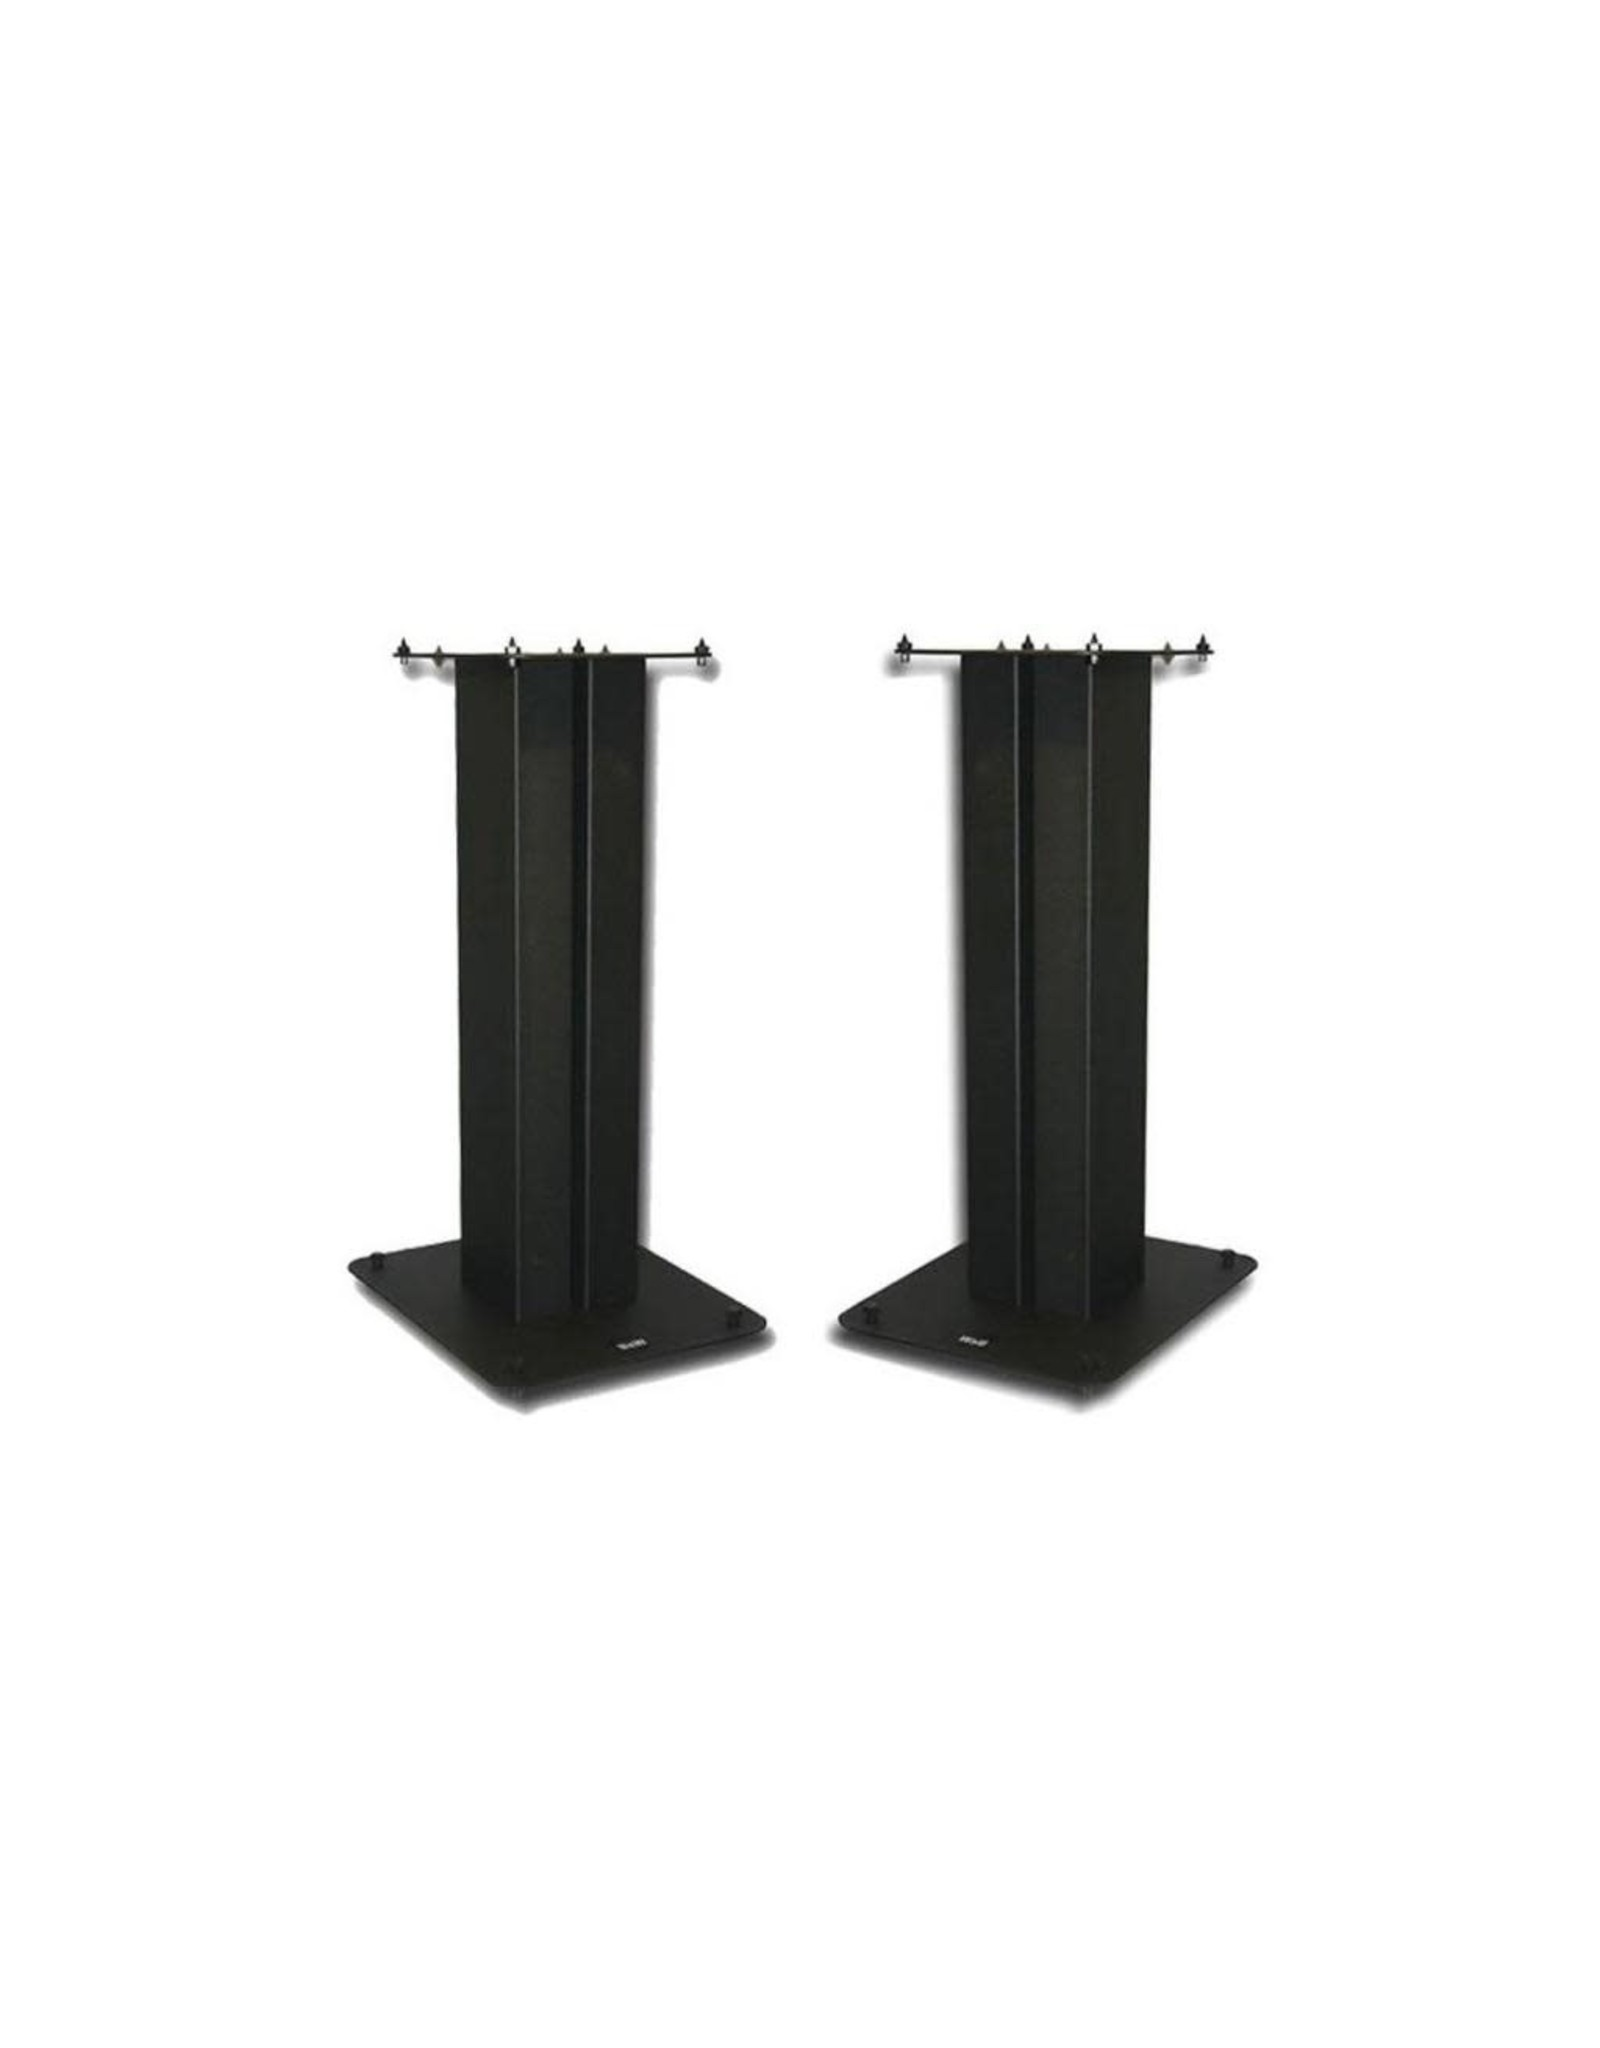 BOWERS & WILKINS B&W STAV24 S2 Floor Stands (pair) BLACK